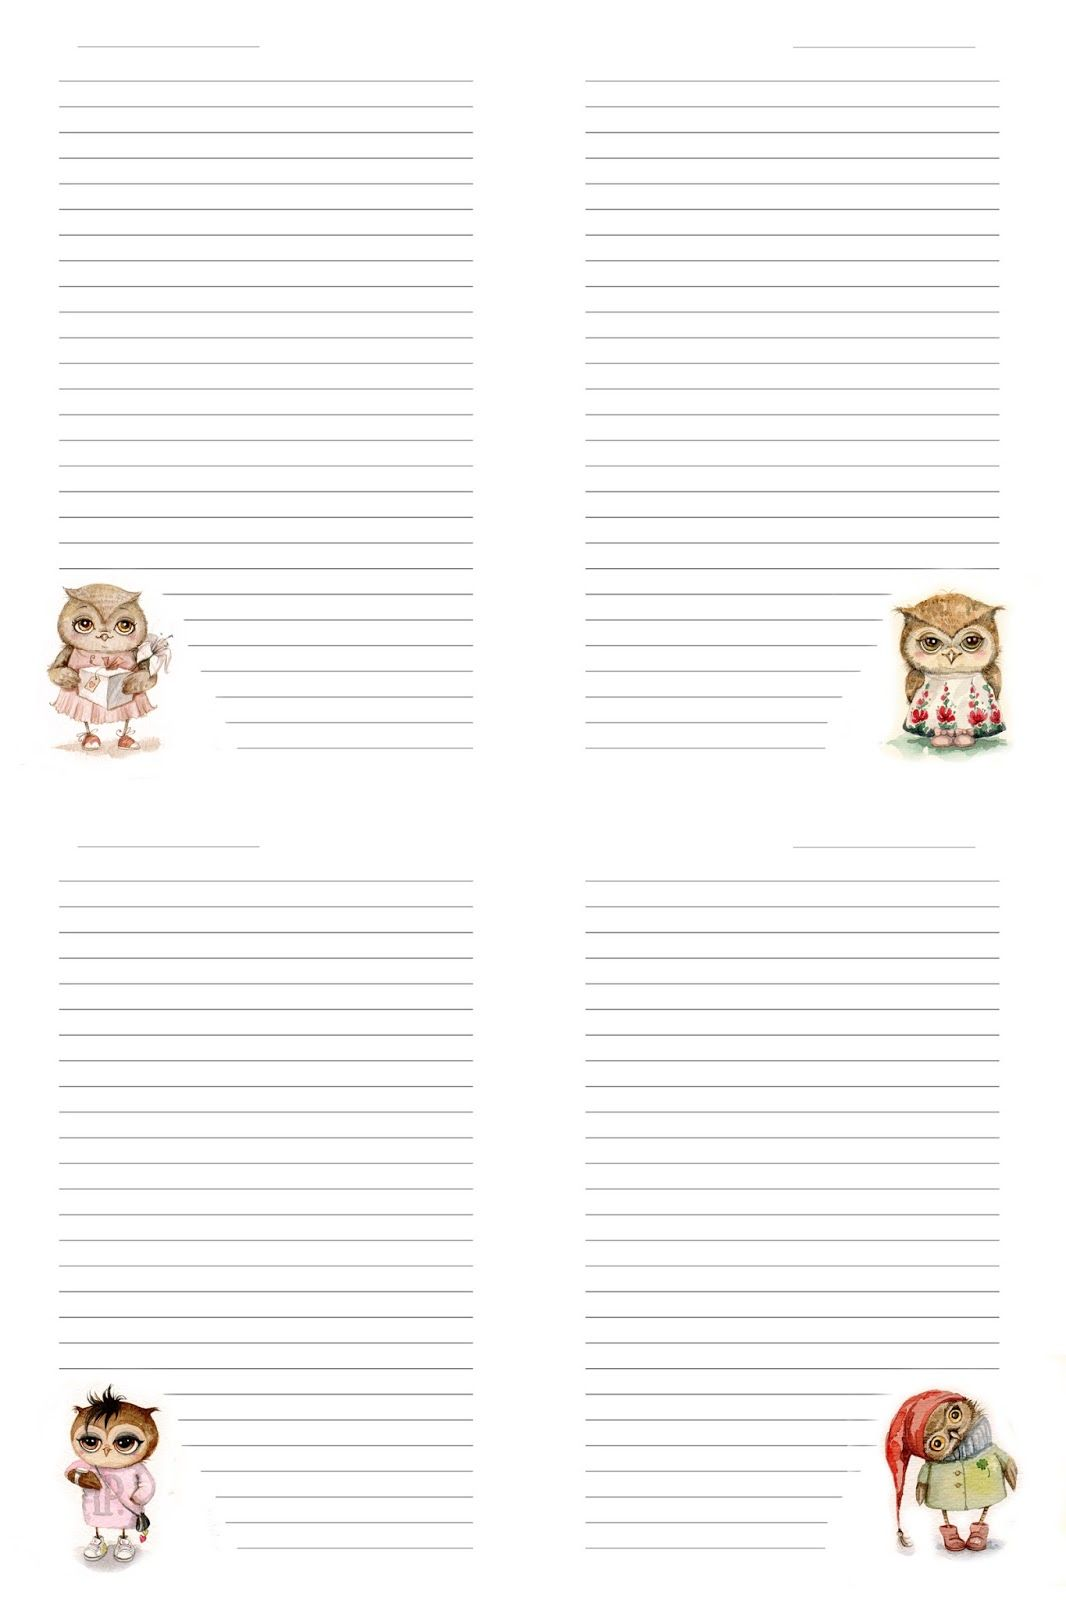 Printable Notepad Paper Entrancing Hand Madealesanalovesky Pages For Notebookстранички Для .